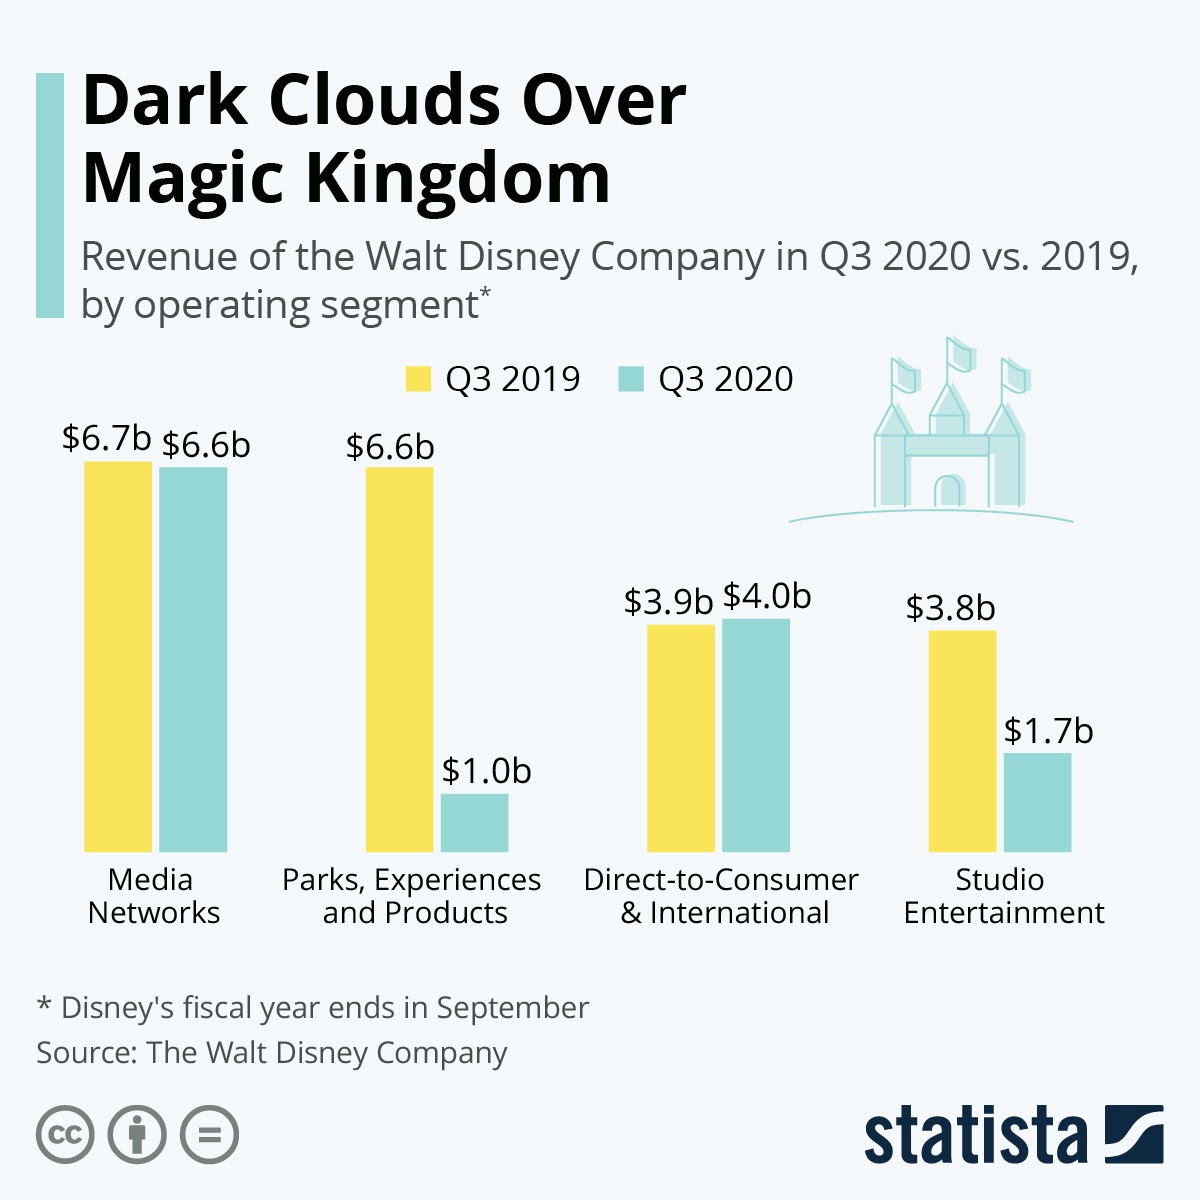 Dark Clouds Over Magic Kingdom #Infographic